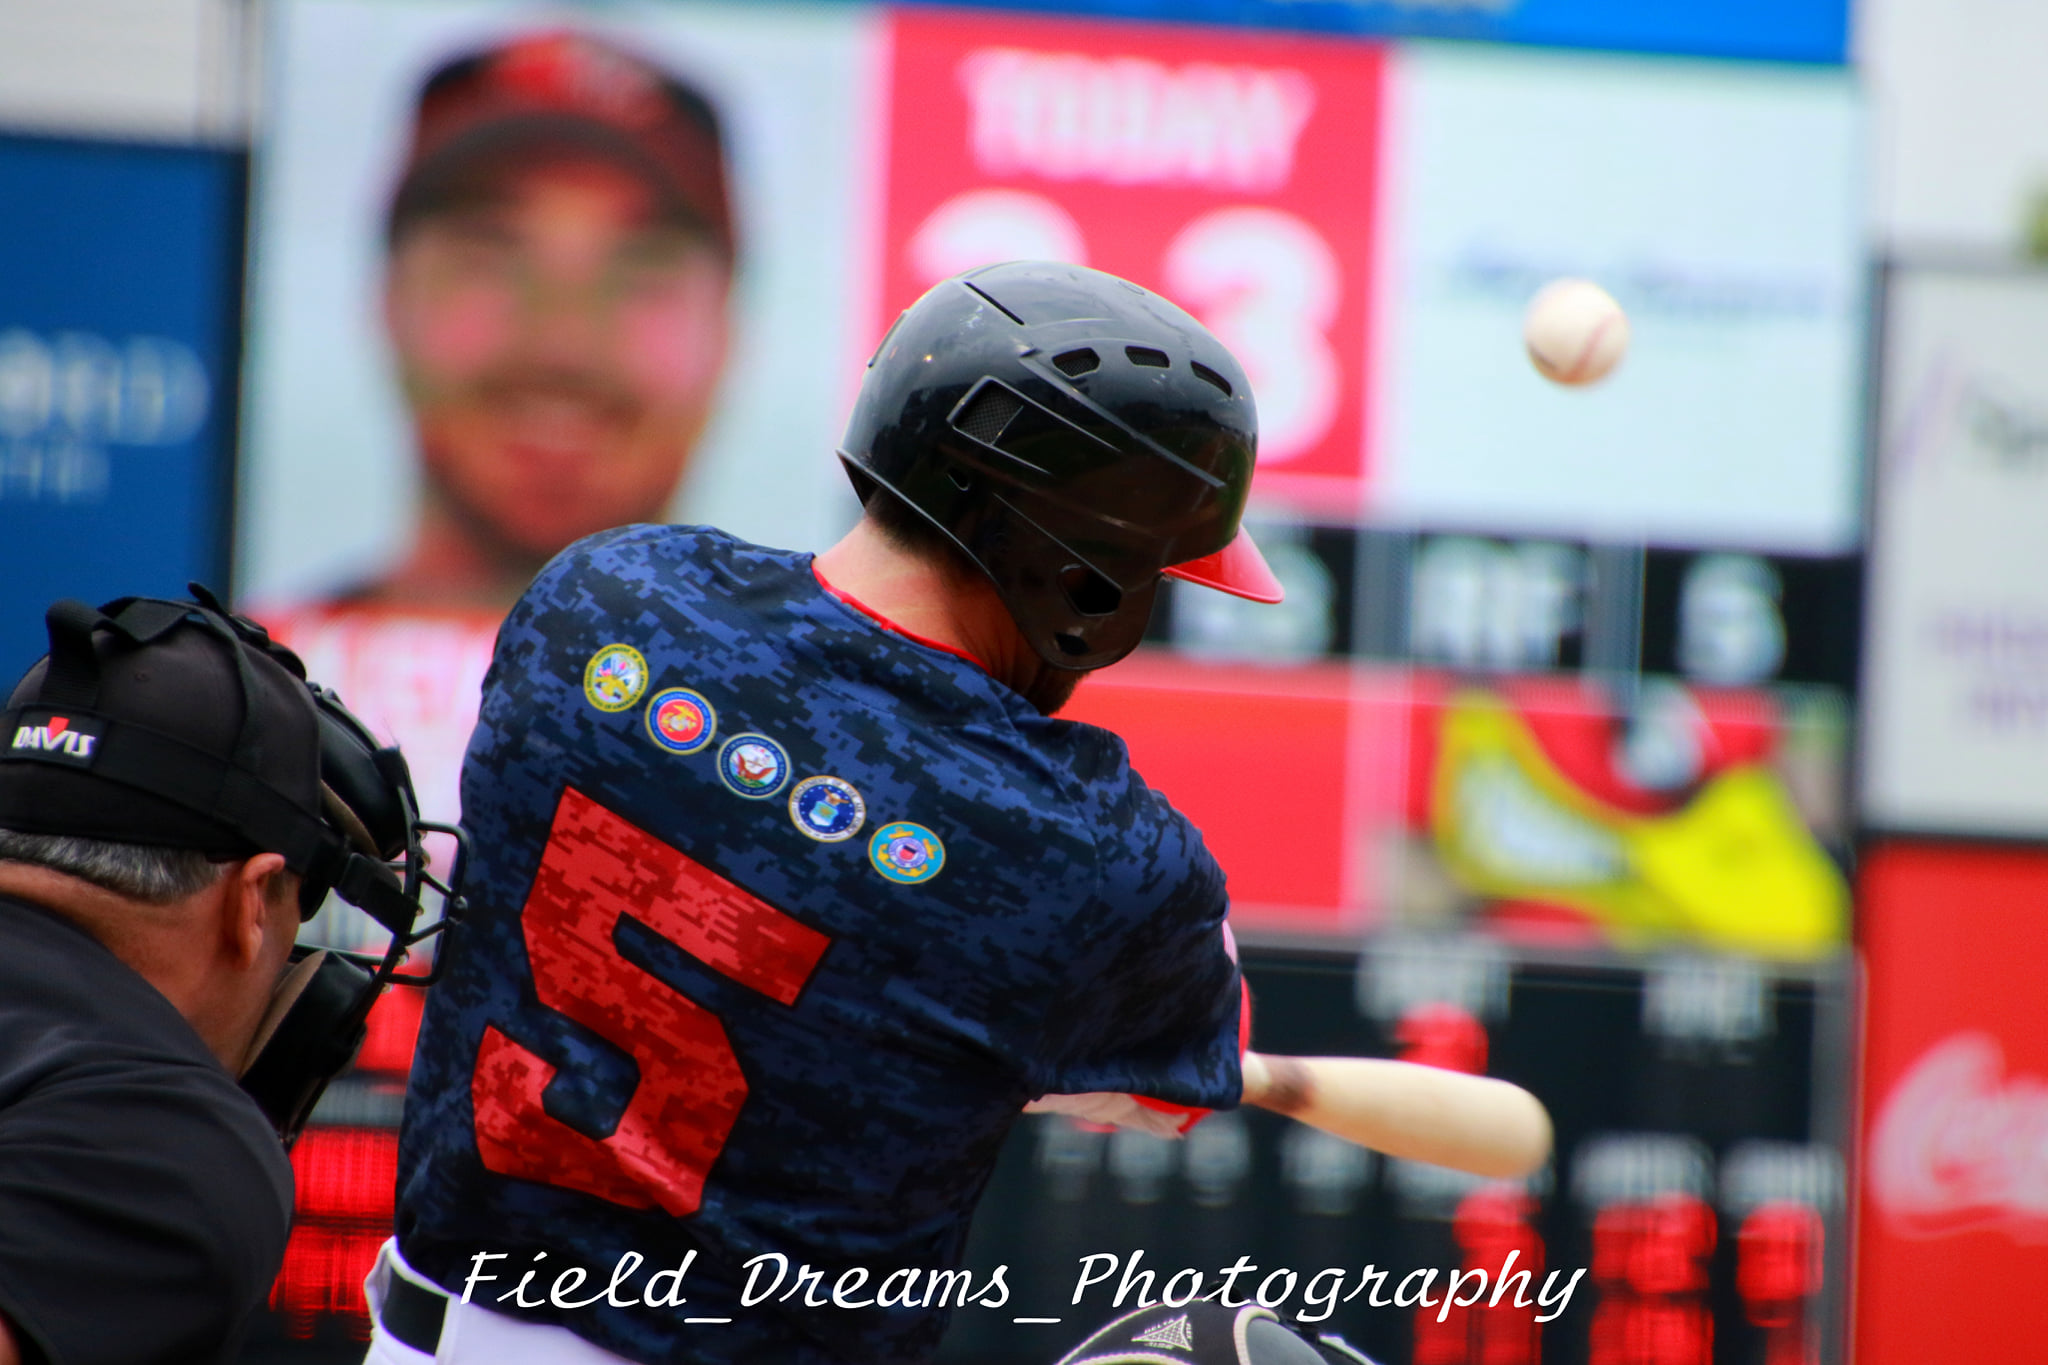 Dogs Dominate Saltdogs, Railroaders Cruise, PURE Performance Honors